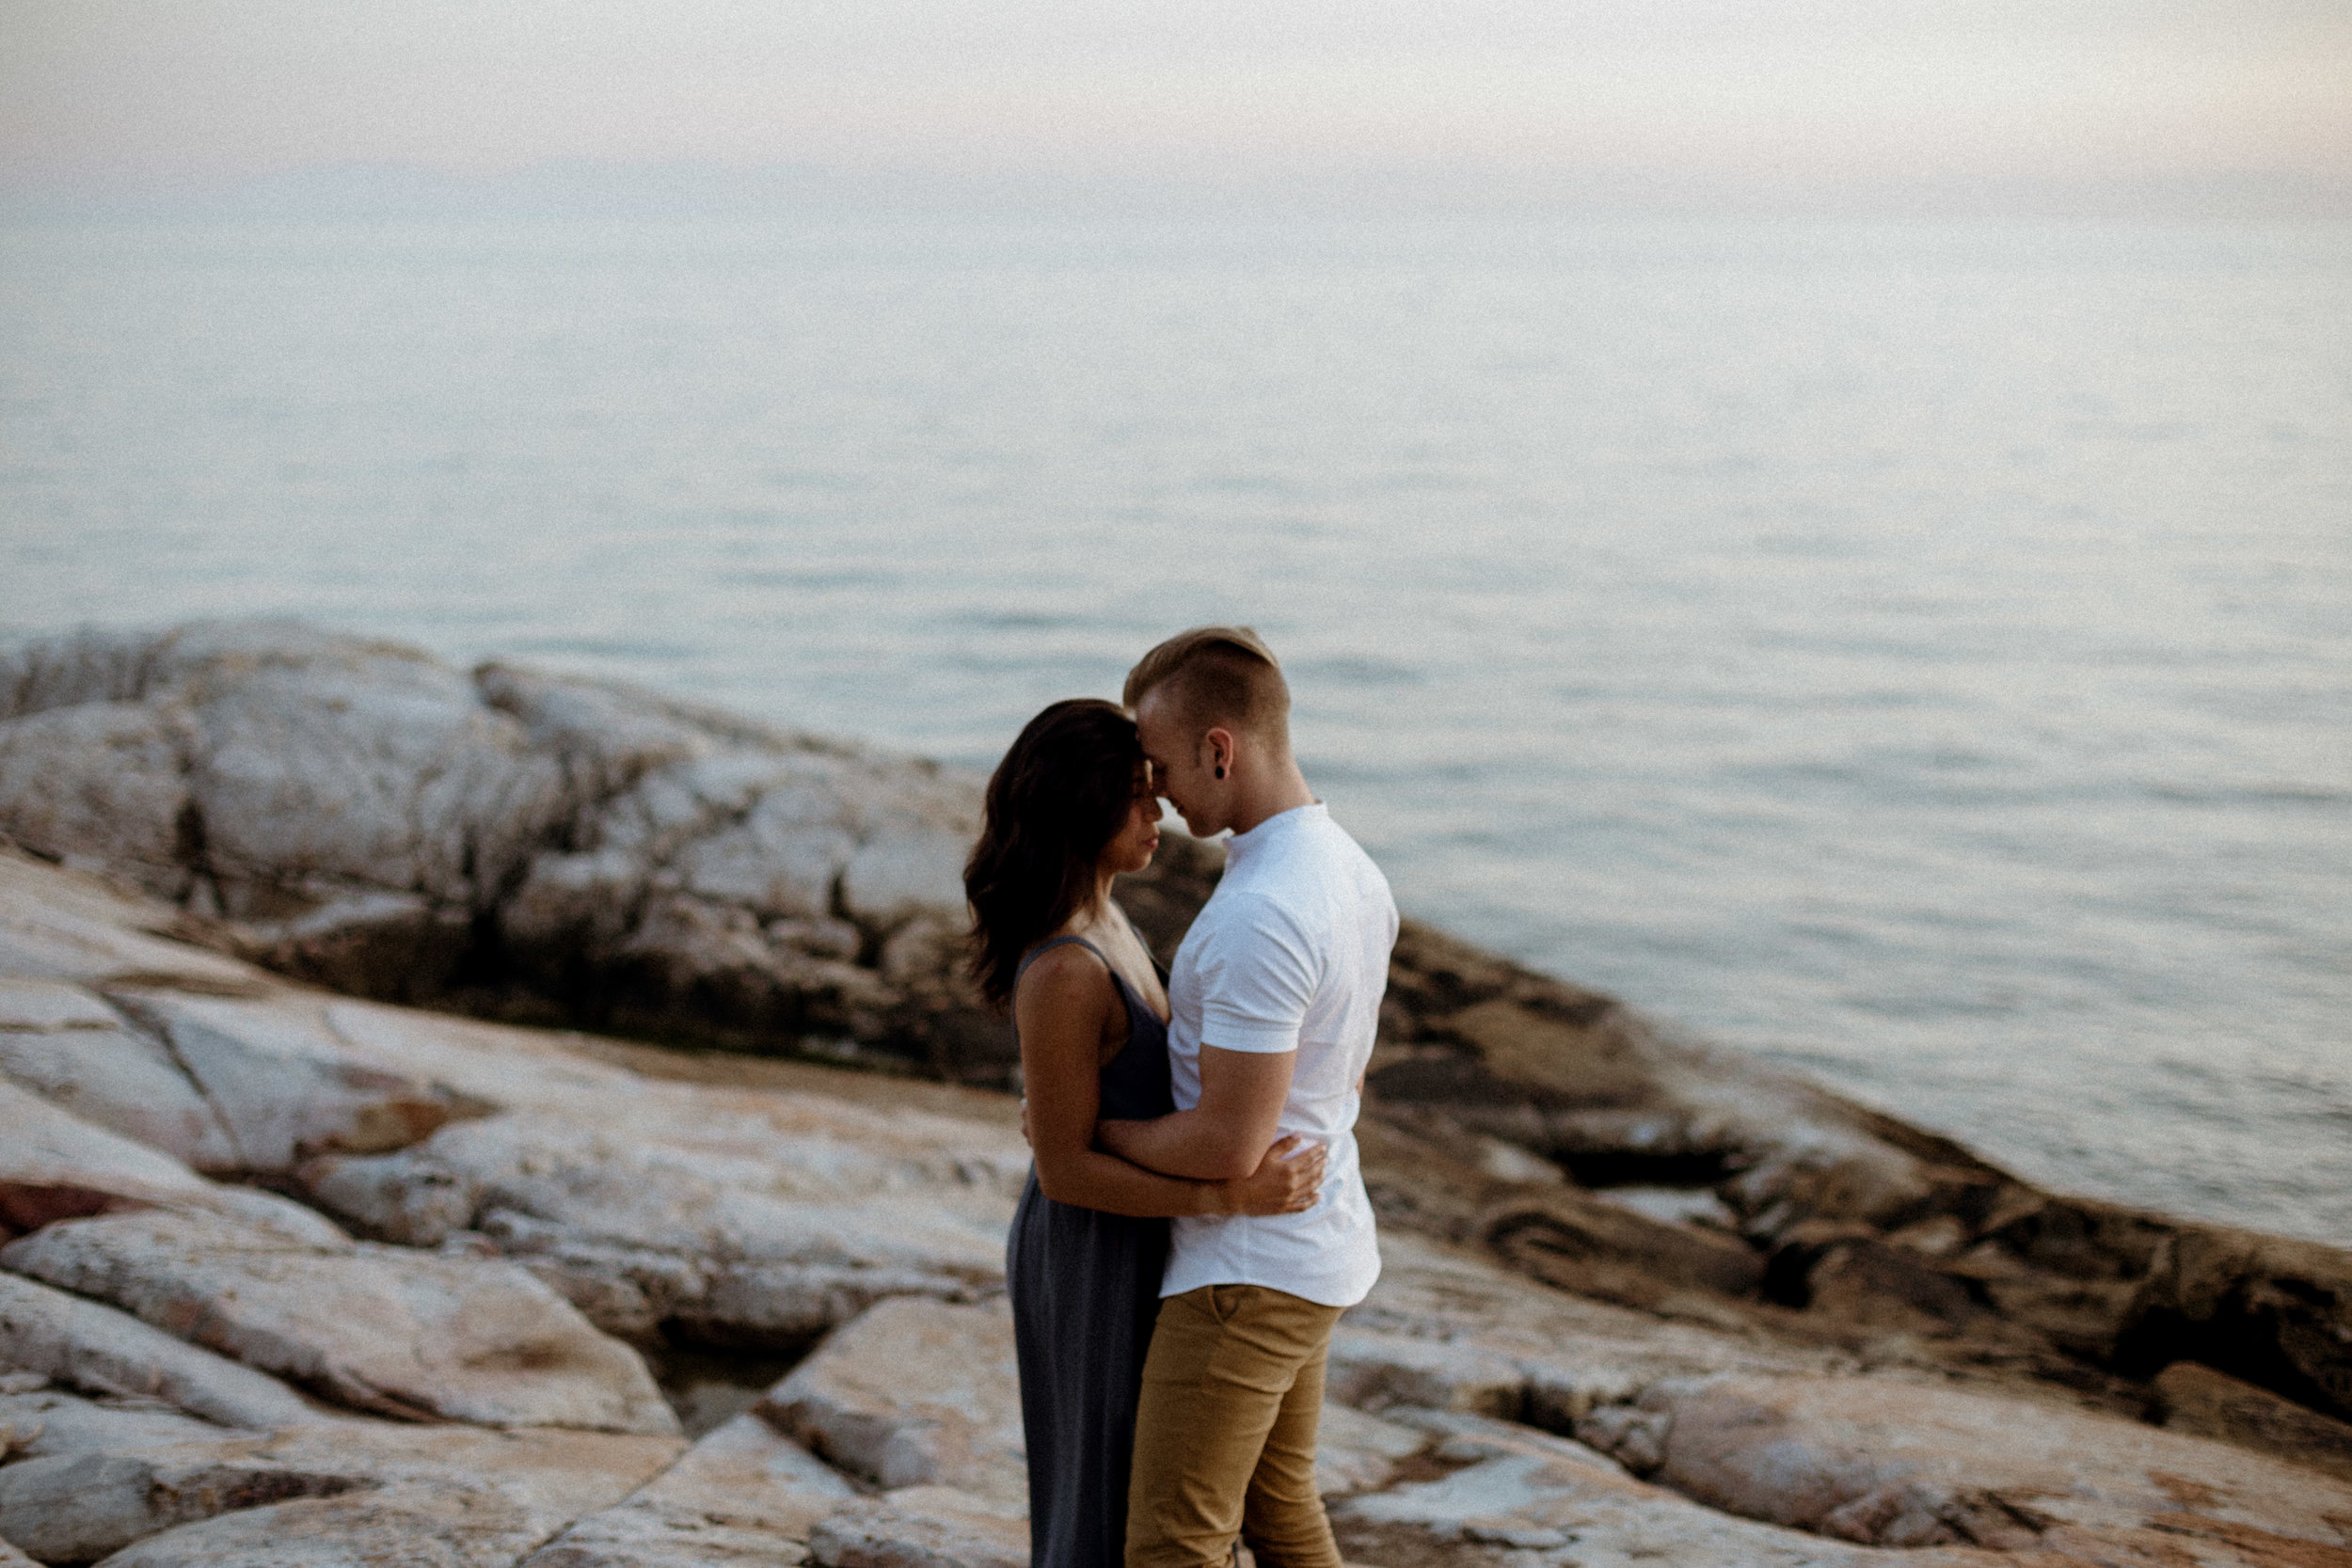 Lighthouse-Park-Engagement-Session-68.jpg